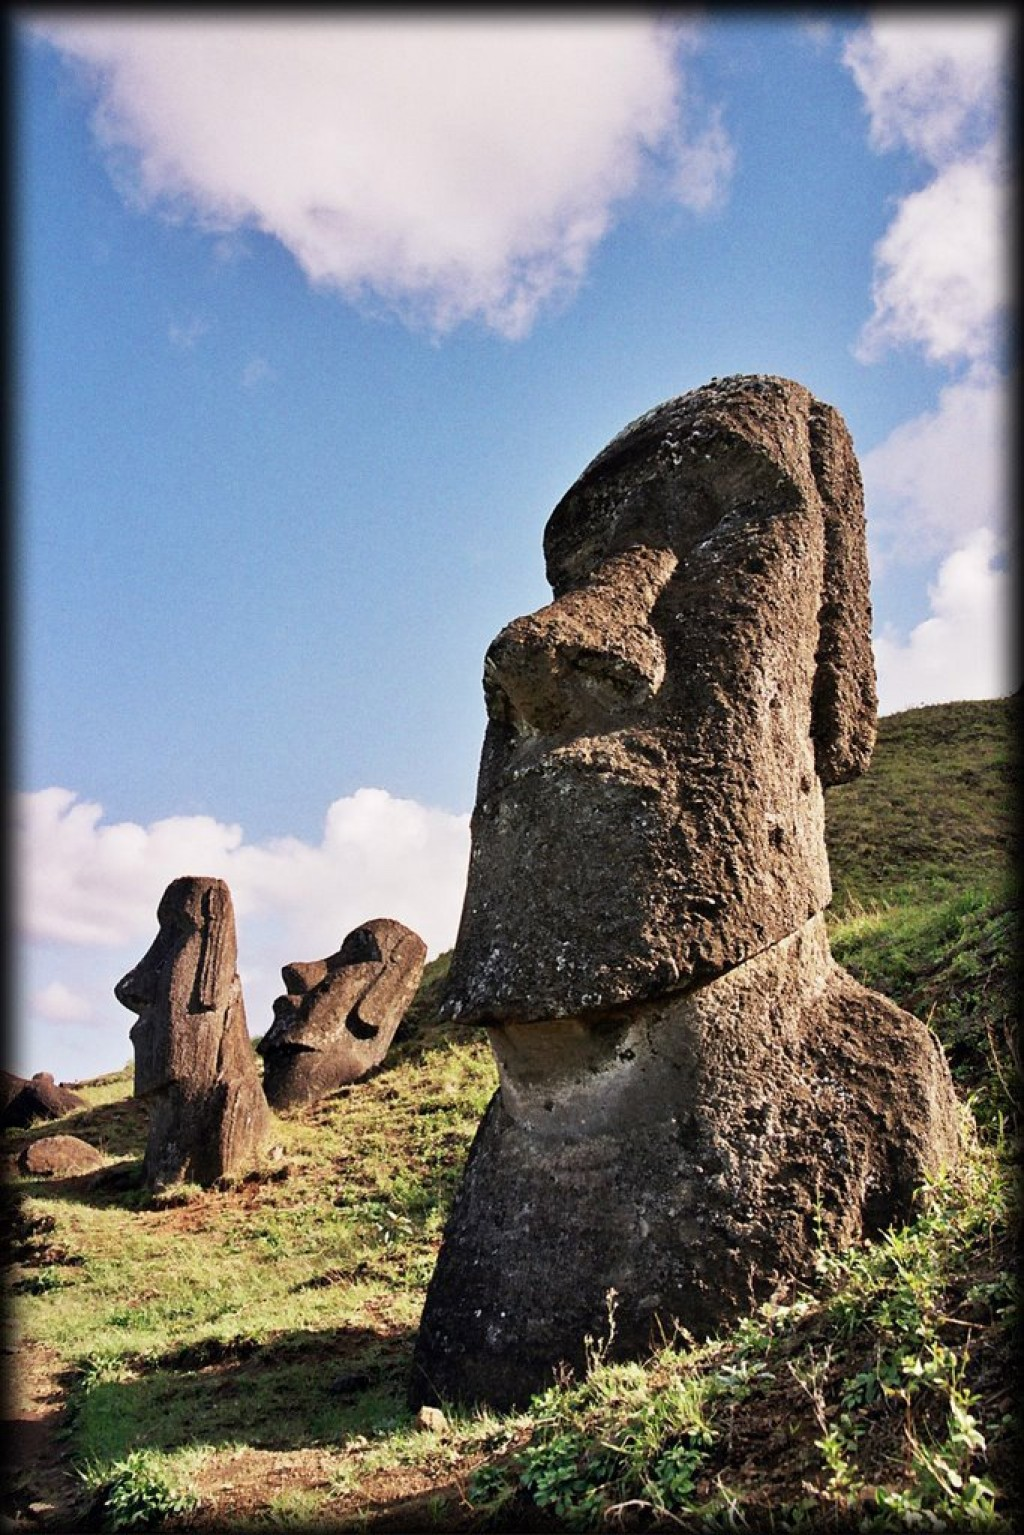 Rano Raraku is the volcano from which all the moai were carved and is one of the most spectacular sites on Easter Island.